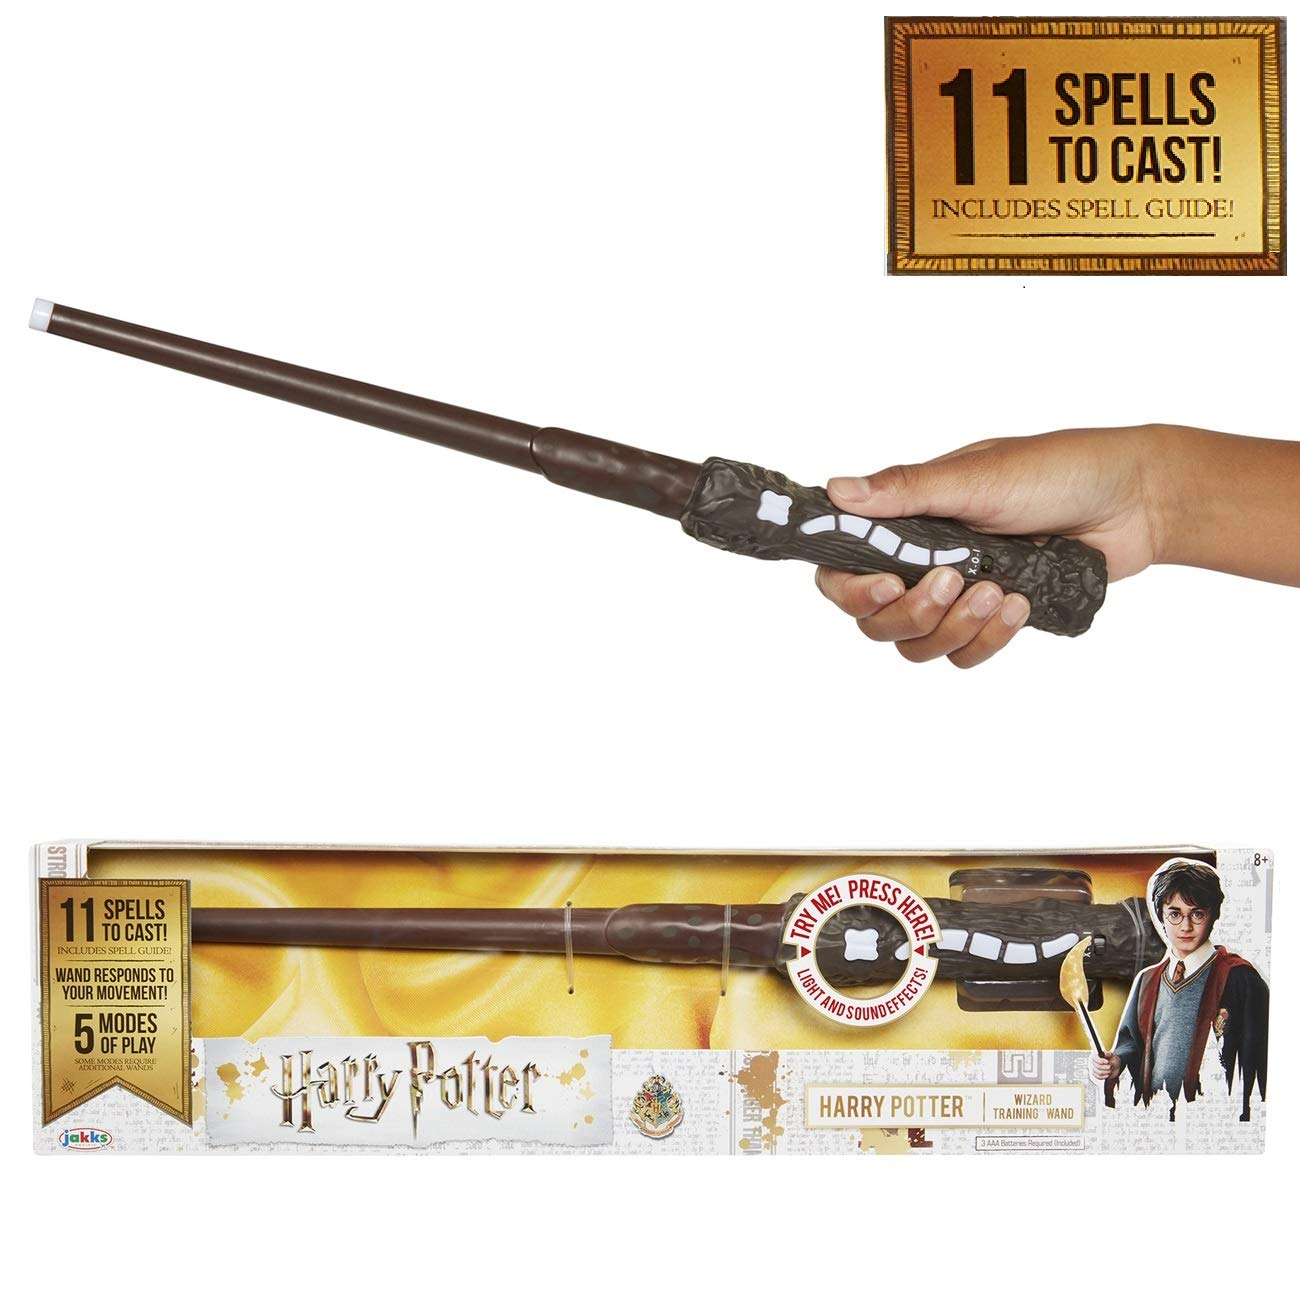 Harry Potter, Wizard Training Wand - 11 SPELLS To Cast Official Toy Wand with Lights & Sounds - Albus Dumbledore Wand & Lord Voldemort Wand Also Available by HARRY POTTER